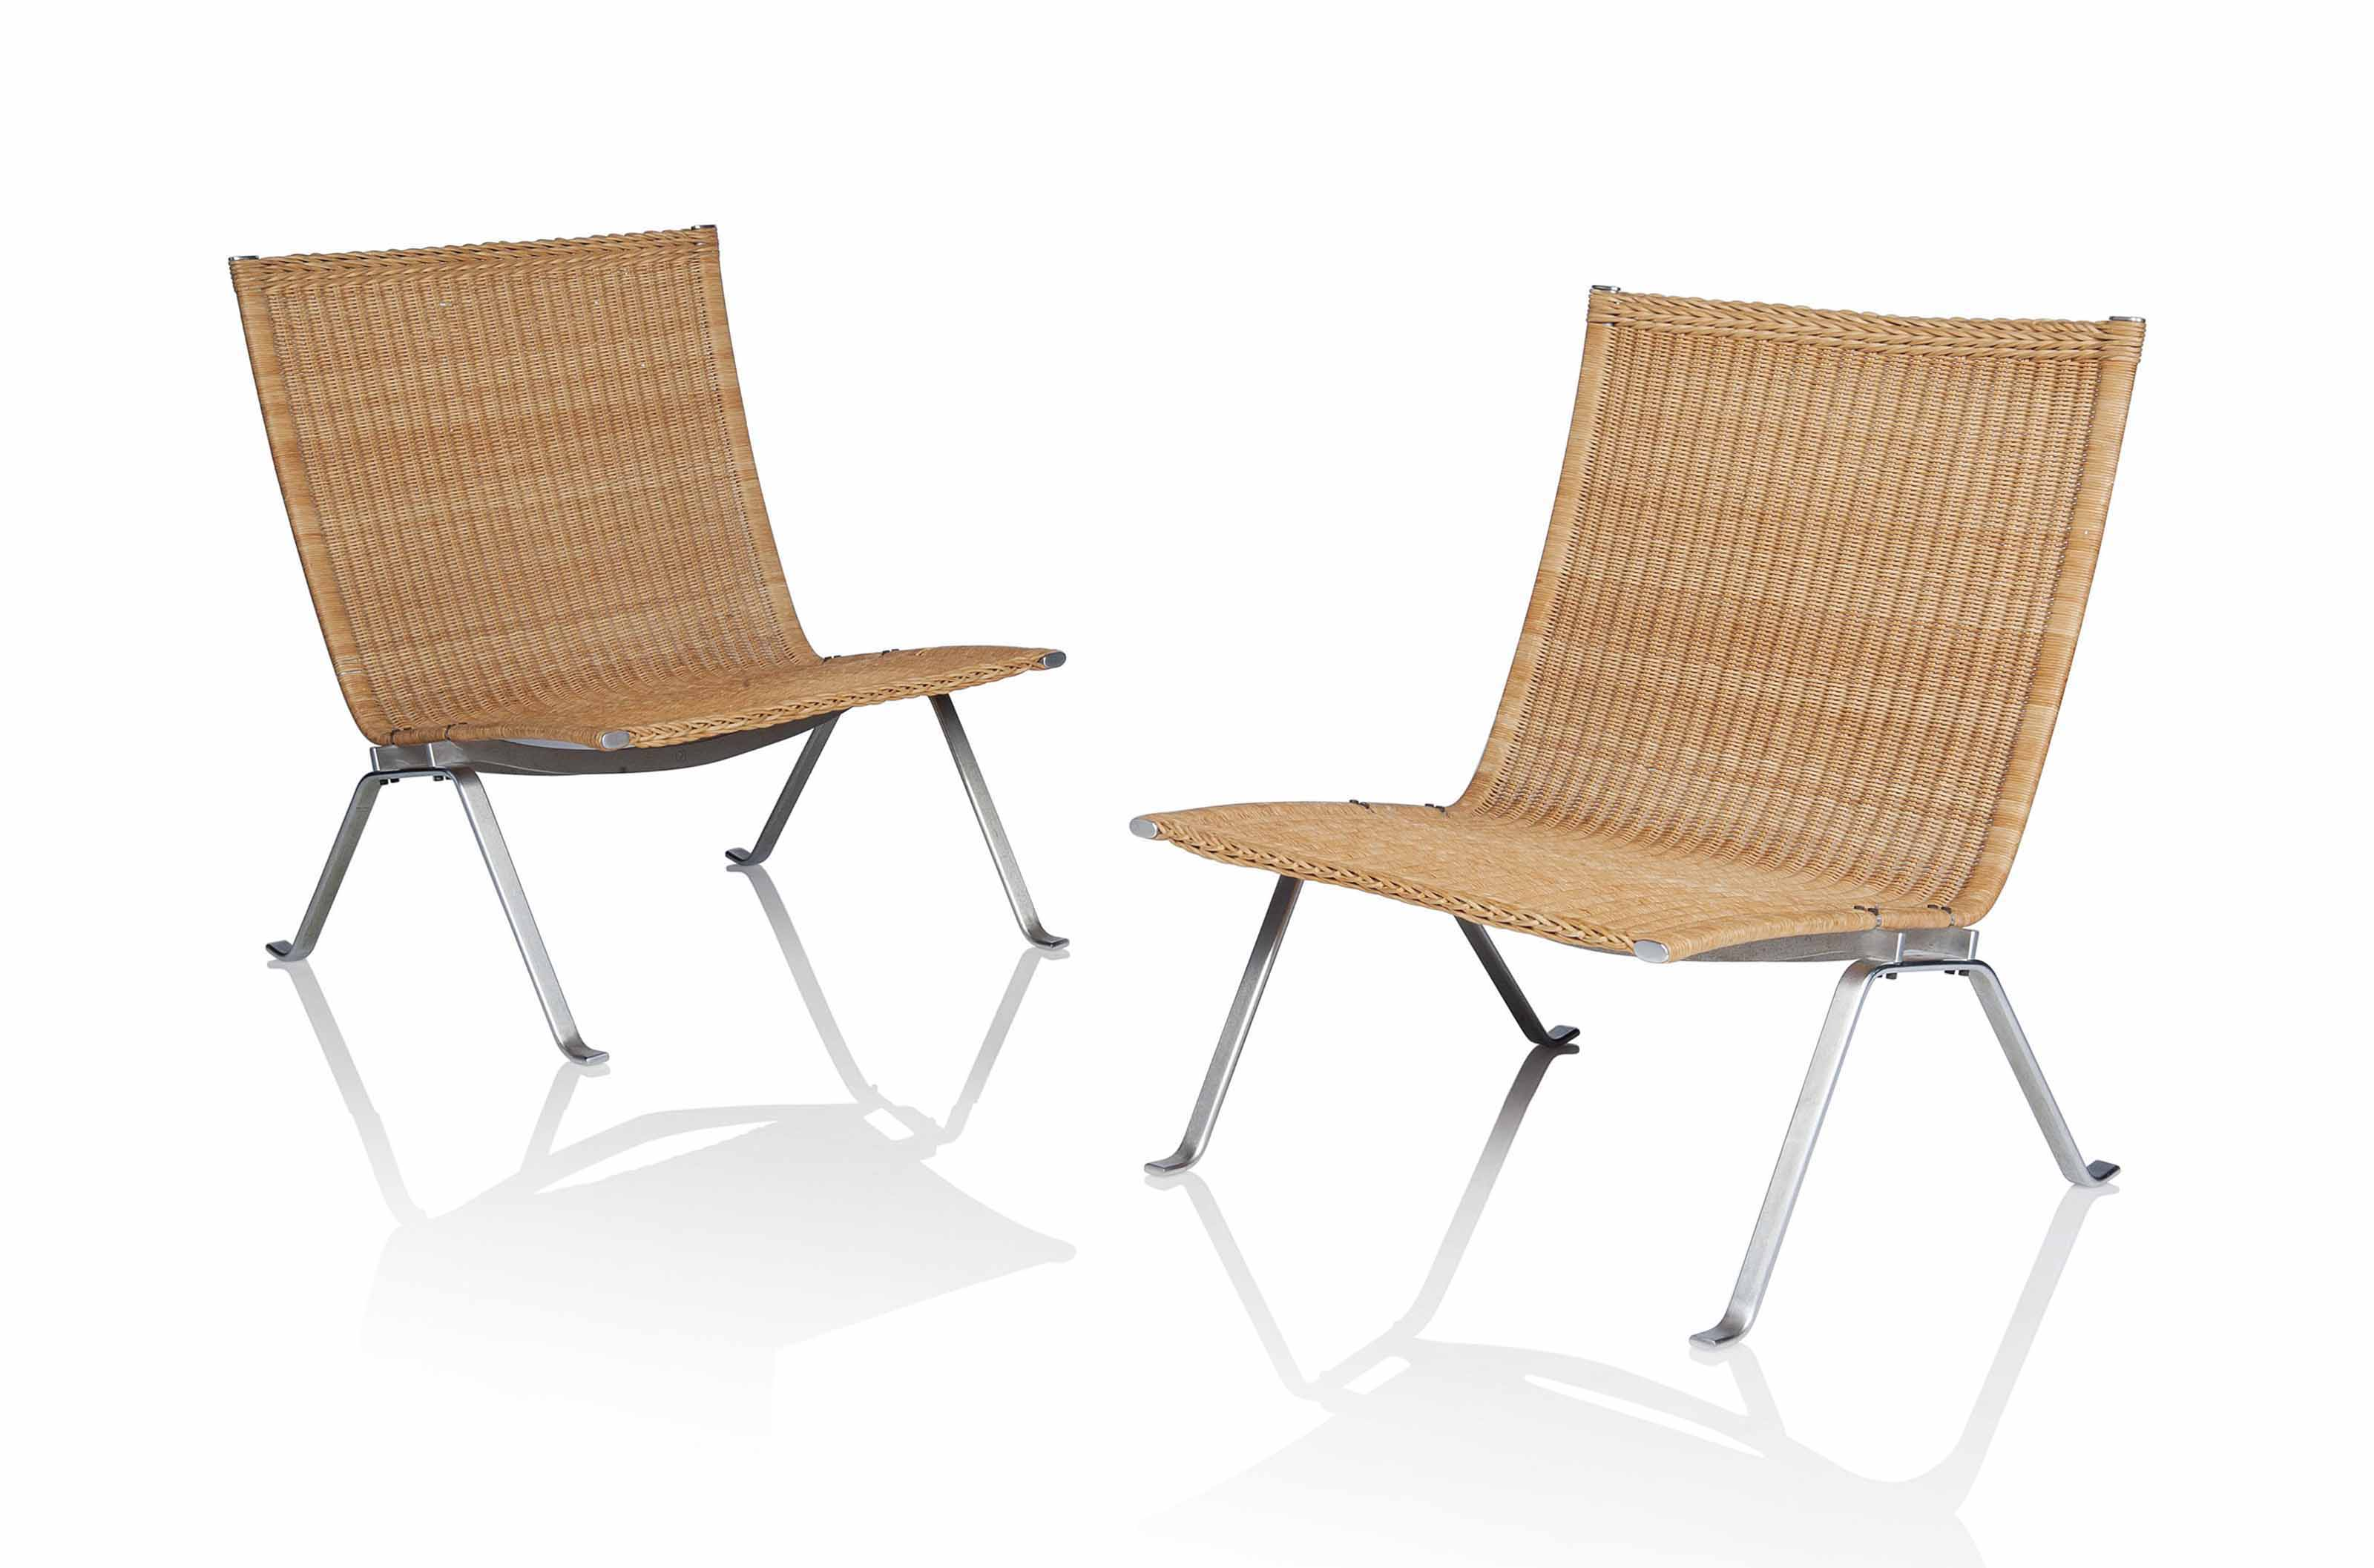 A PAIR OF 'PK22' LOUNGE CHAIRS